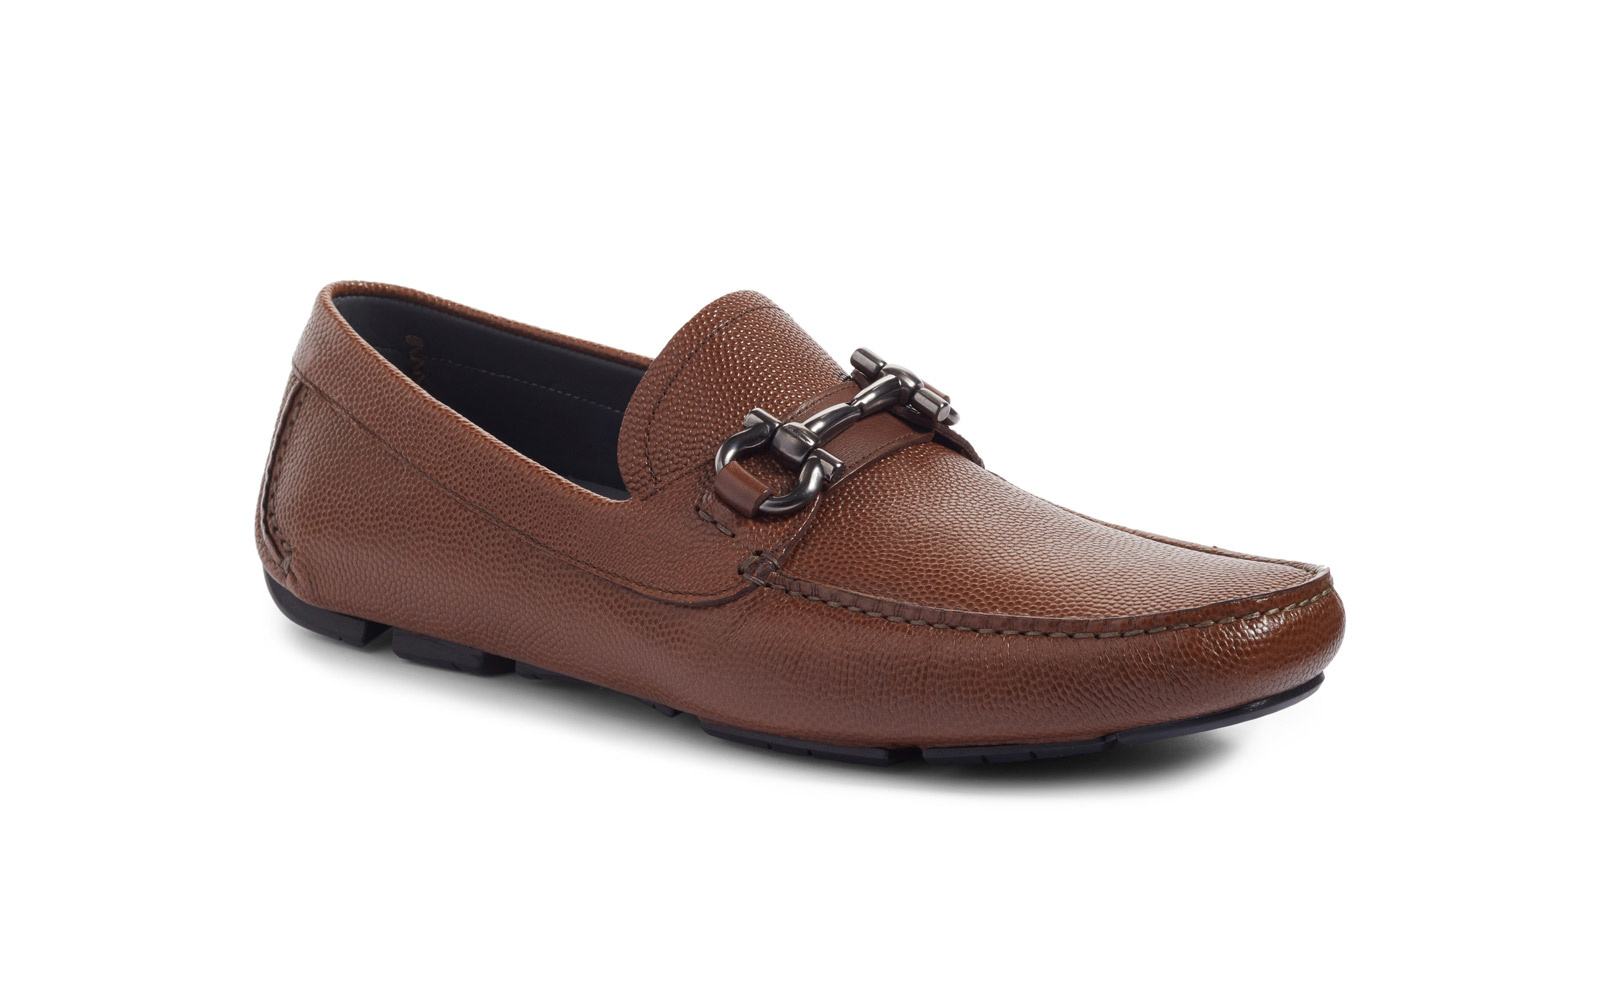 e5eefcb07 Best For  Dressing Up or Down. best dress shoes for men Salvatore Ferragamo  loafers. Courtesy of Nordstrom